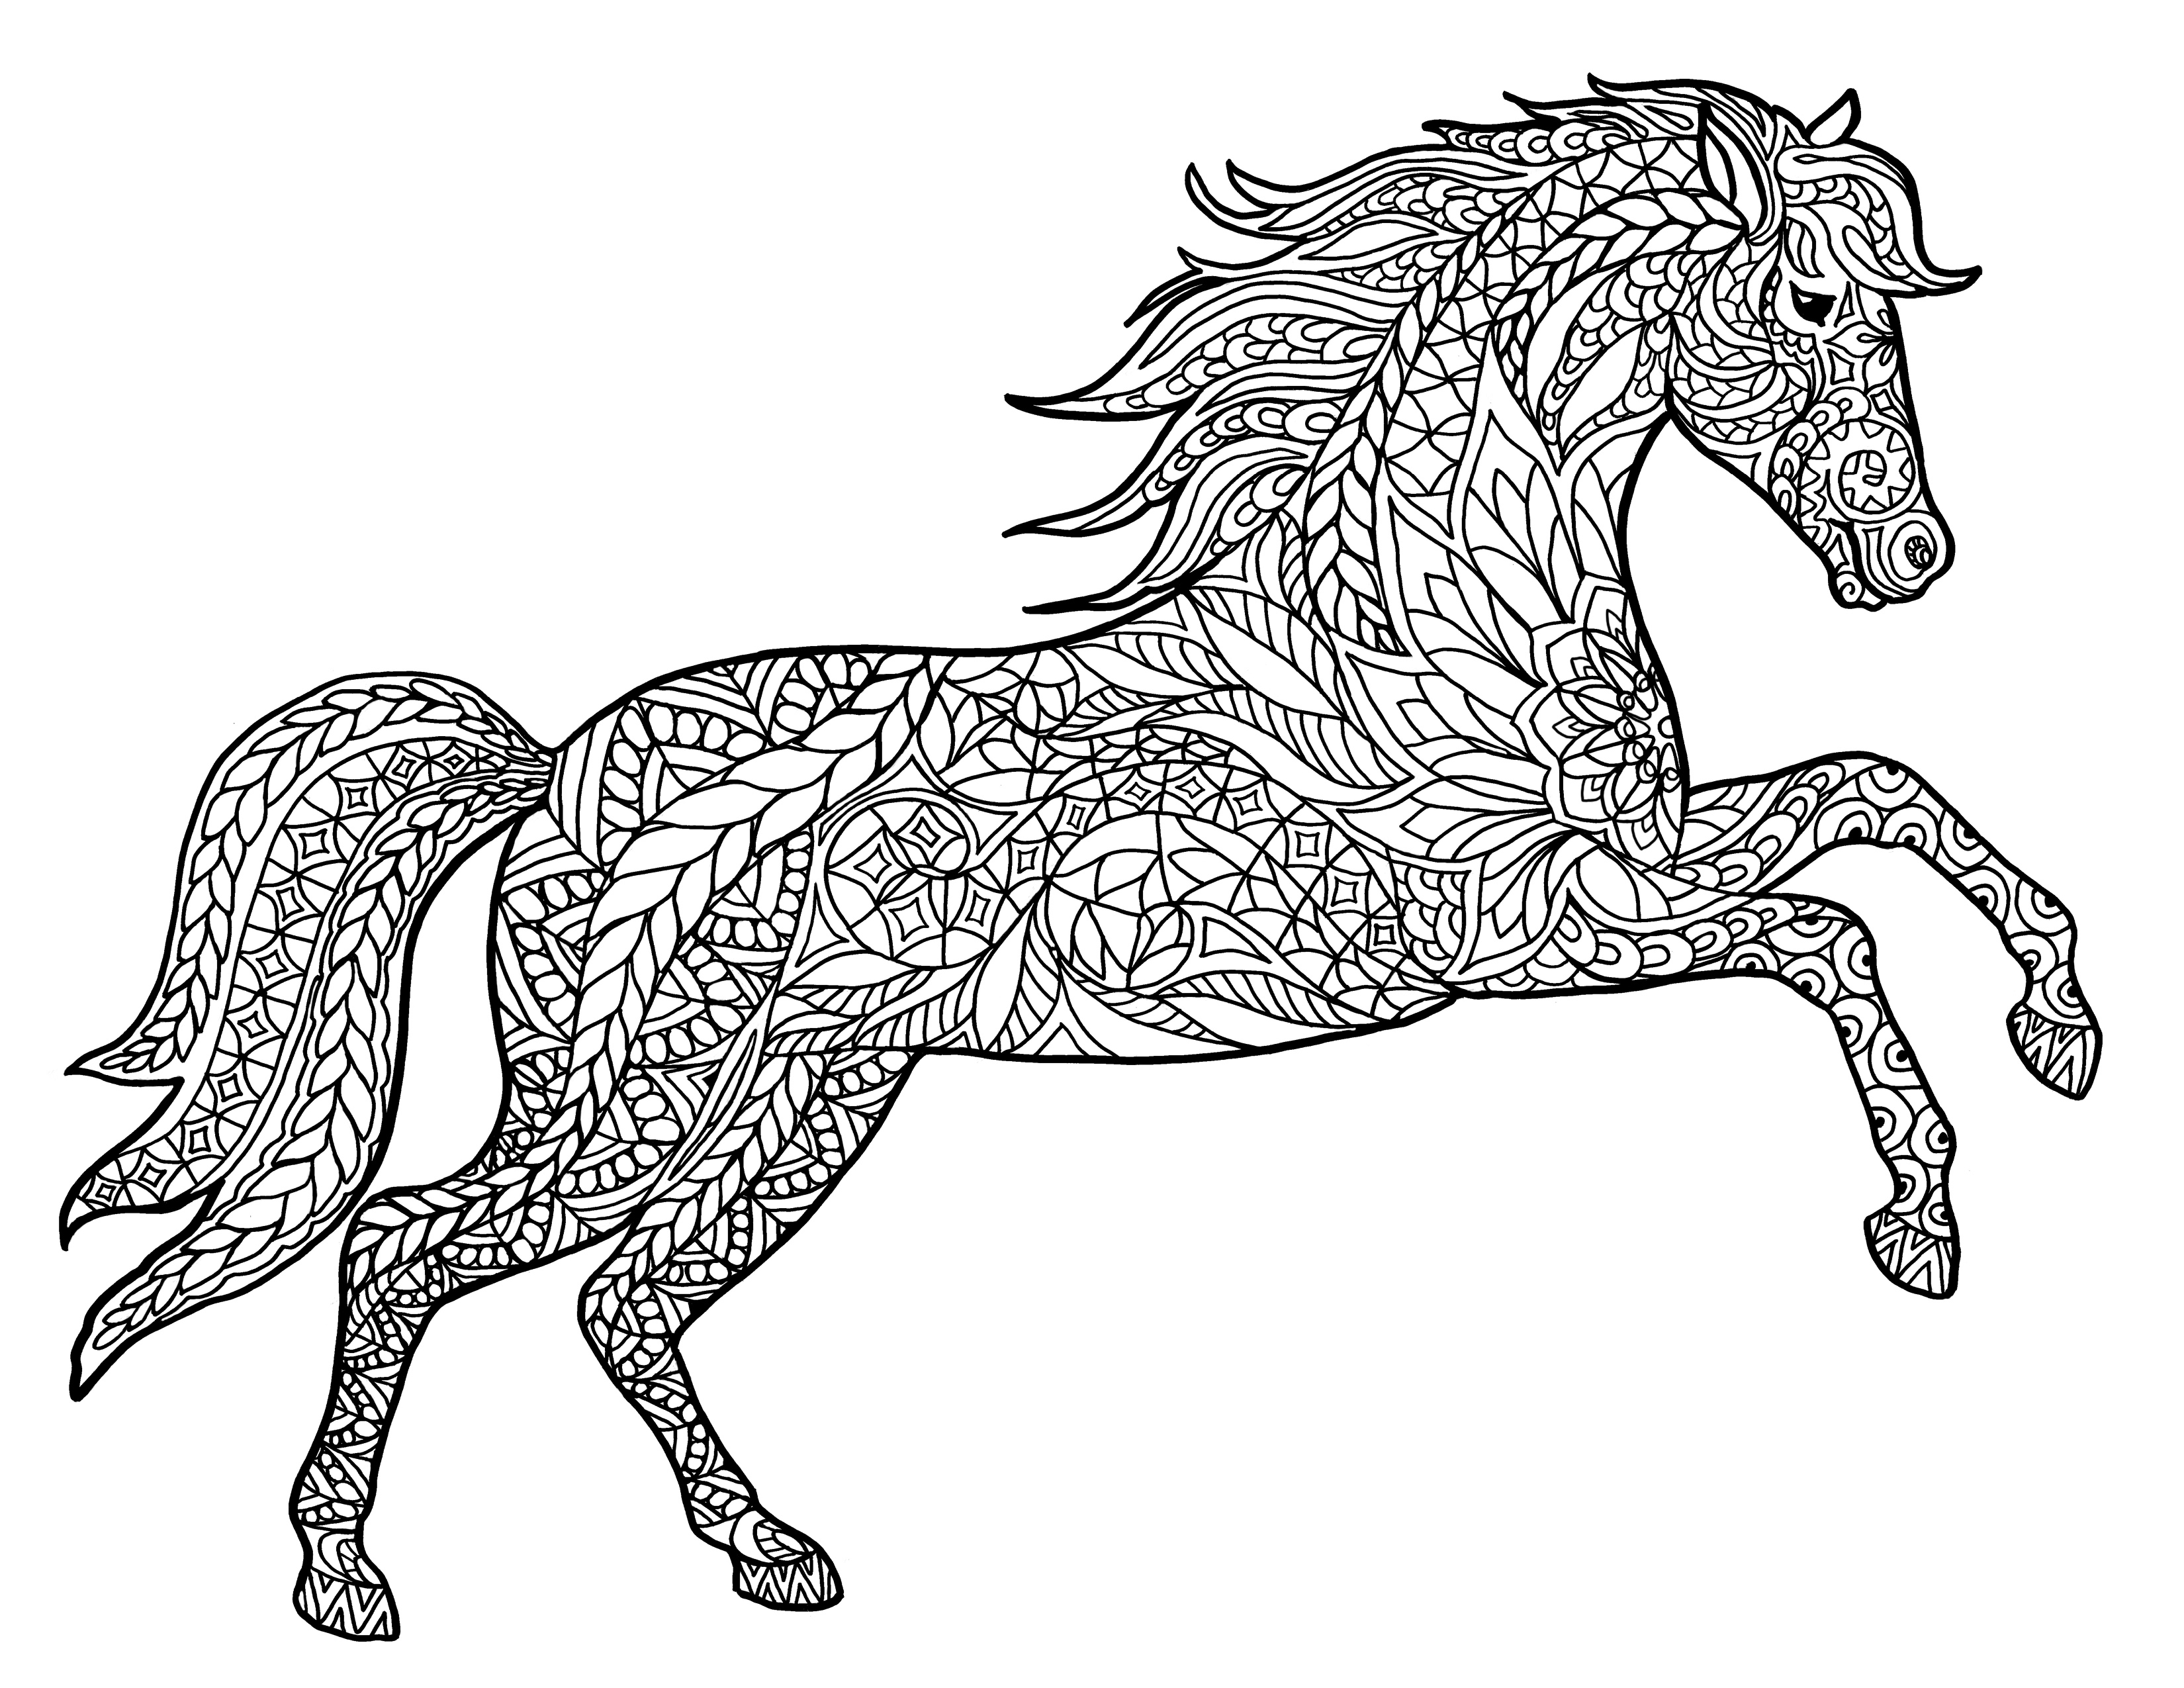 wild horse coloring pages palomino horse coloring pages download and print for free wild coloring horse pages